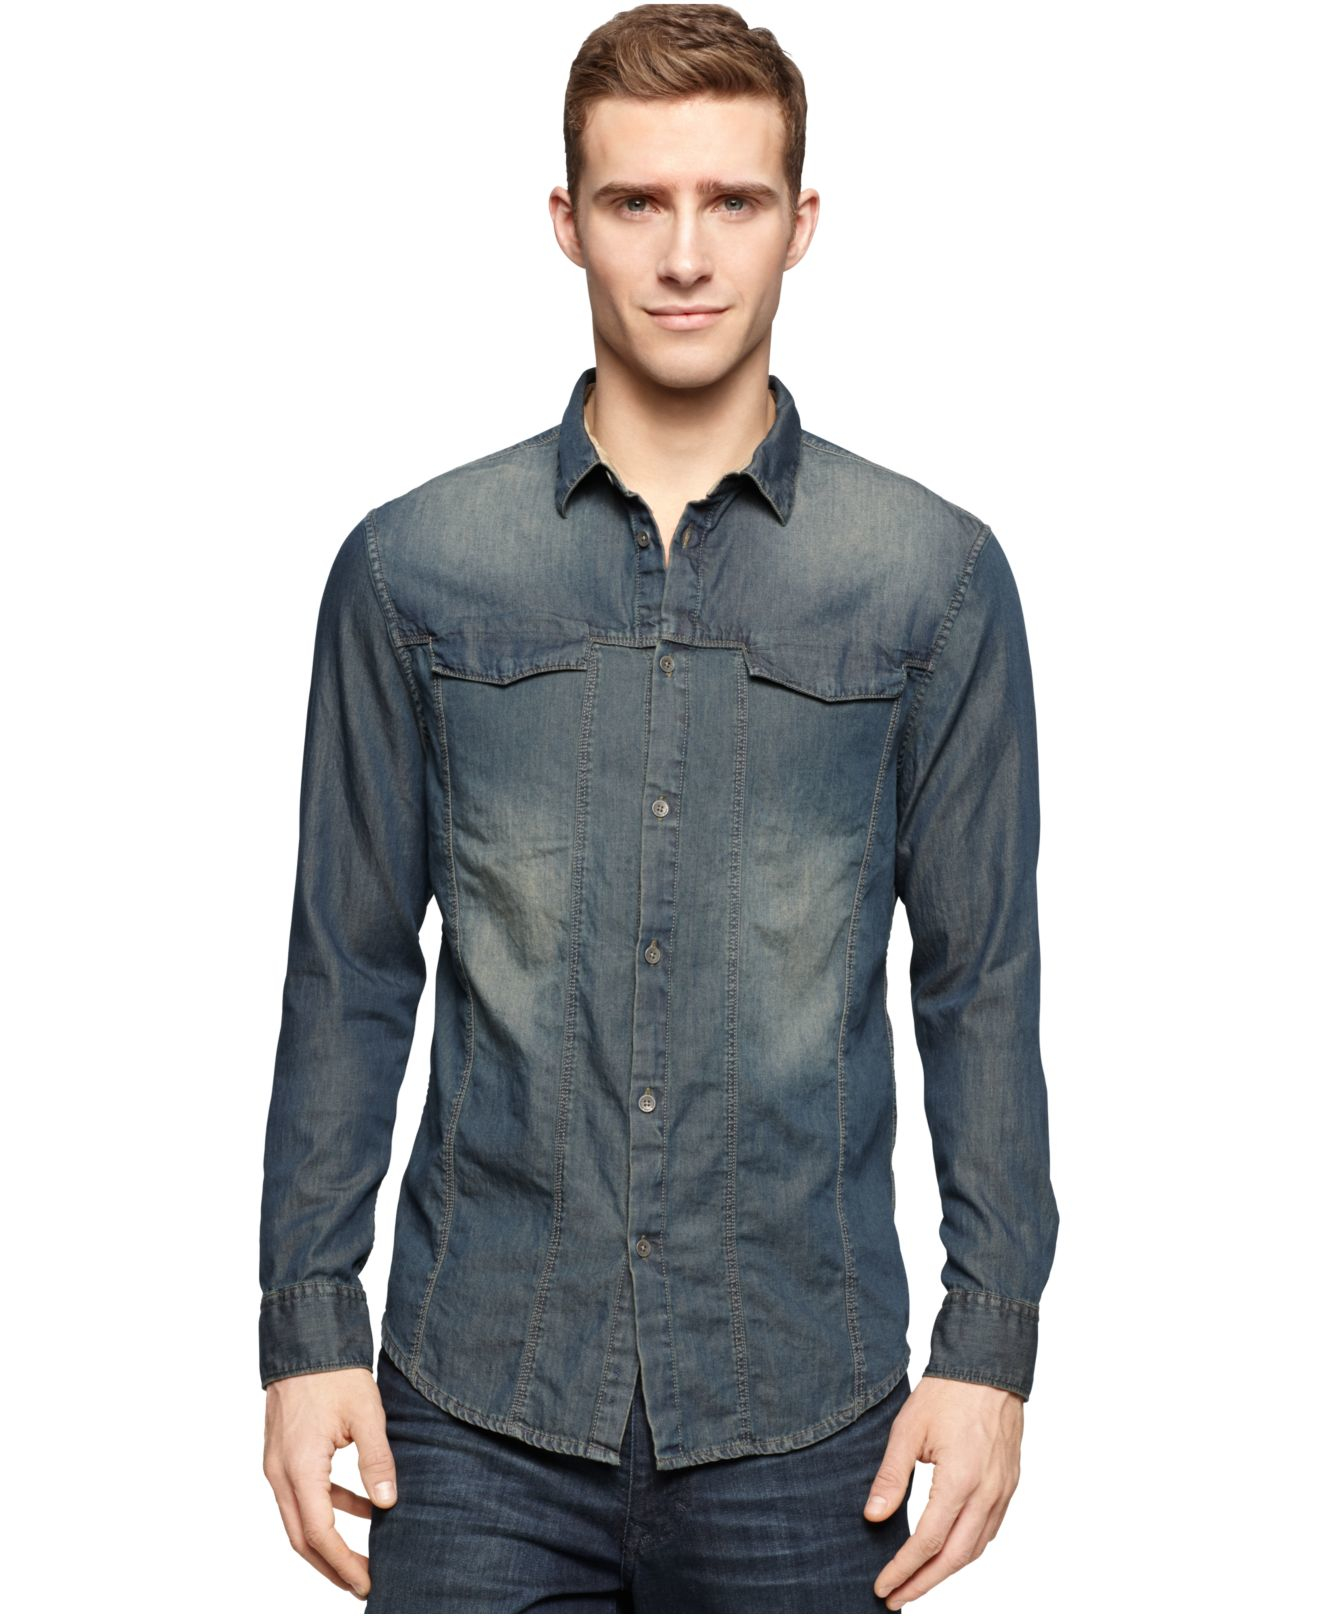 calvin klein jeans direct dye trucker shirt in gray for. Black Bedroom Furniture Sets. Home Design Ideas